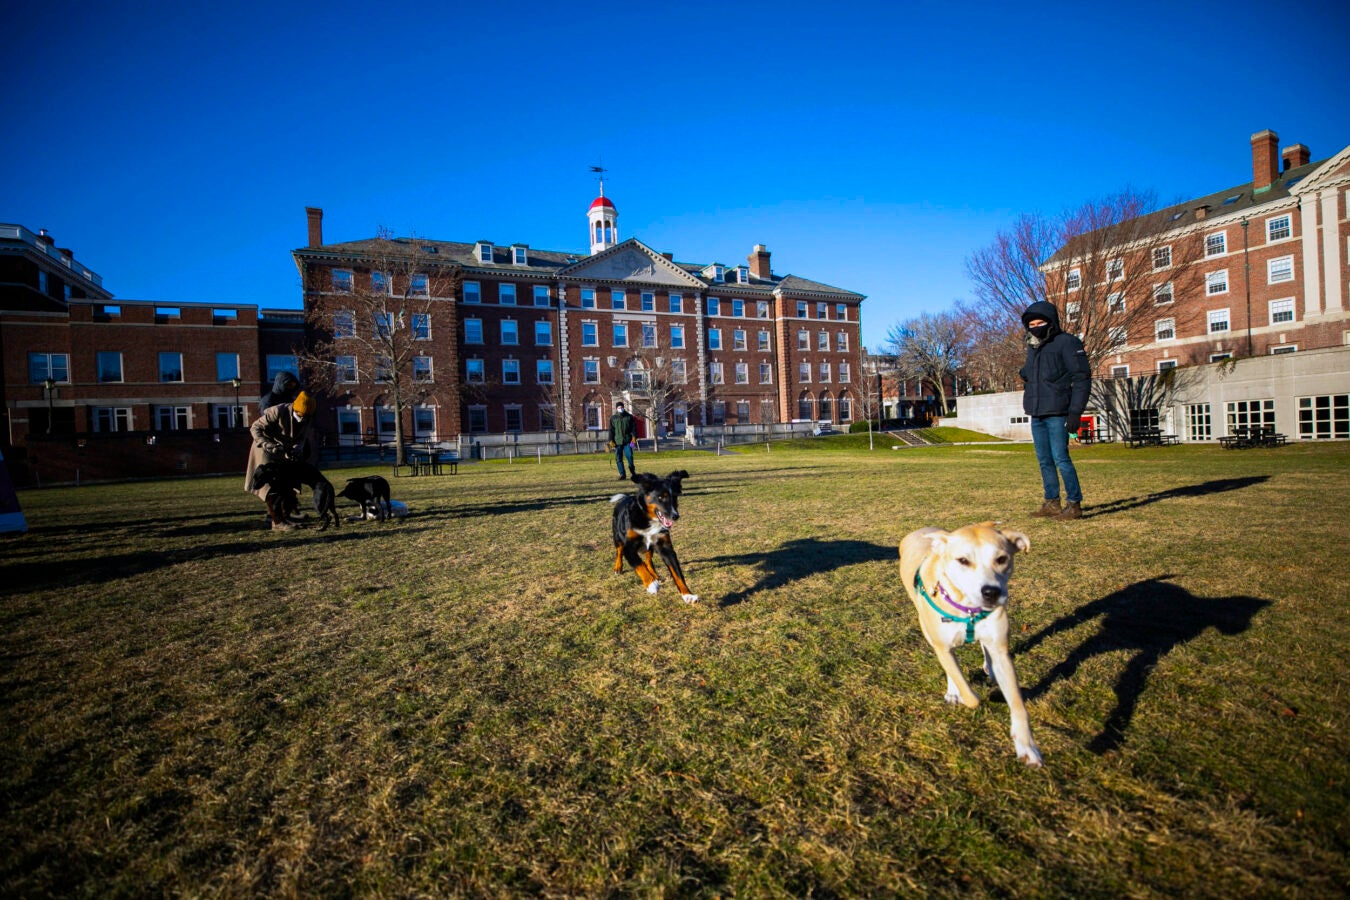 A puppy play group gathers in open space facing Cabot House.